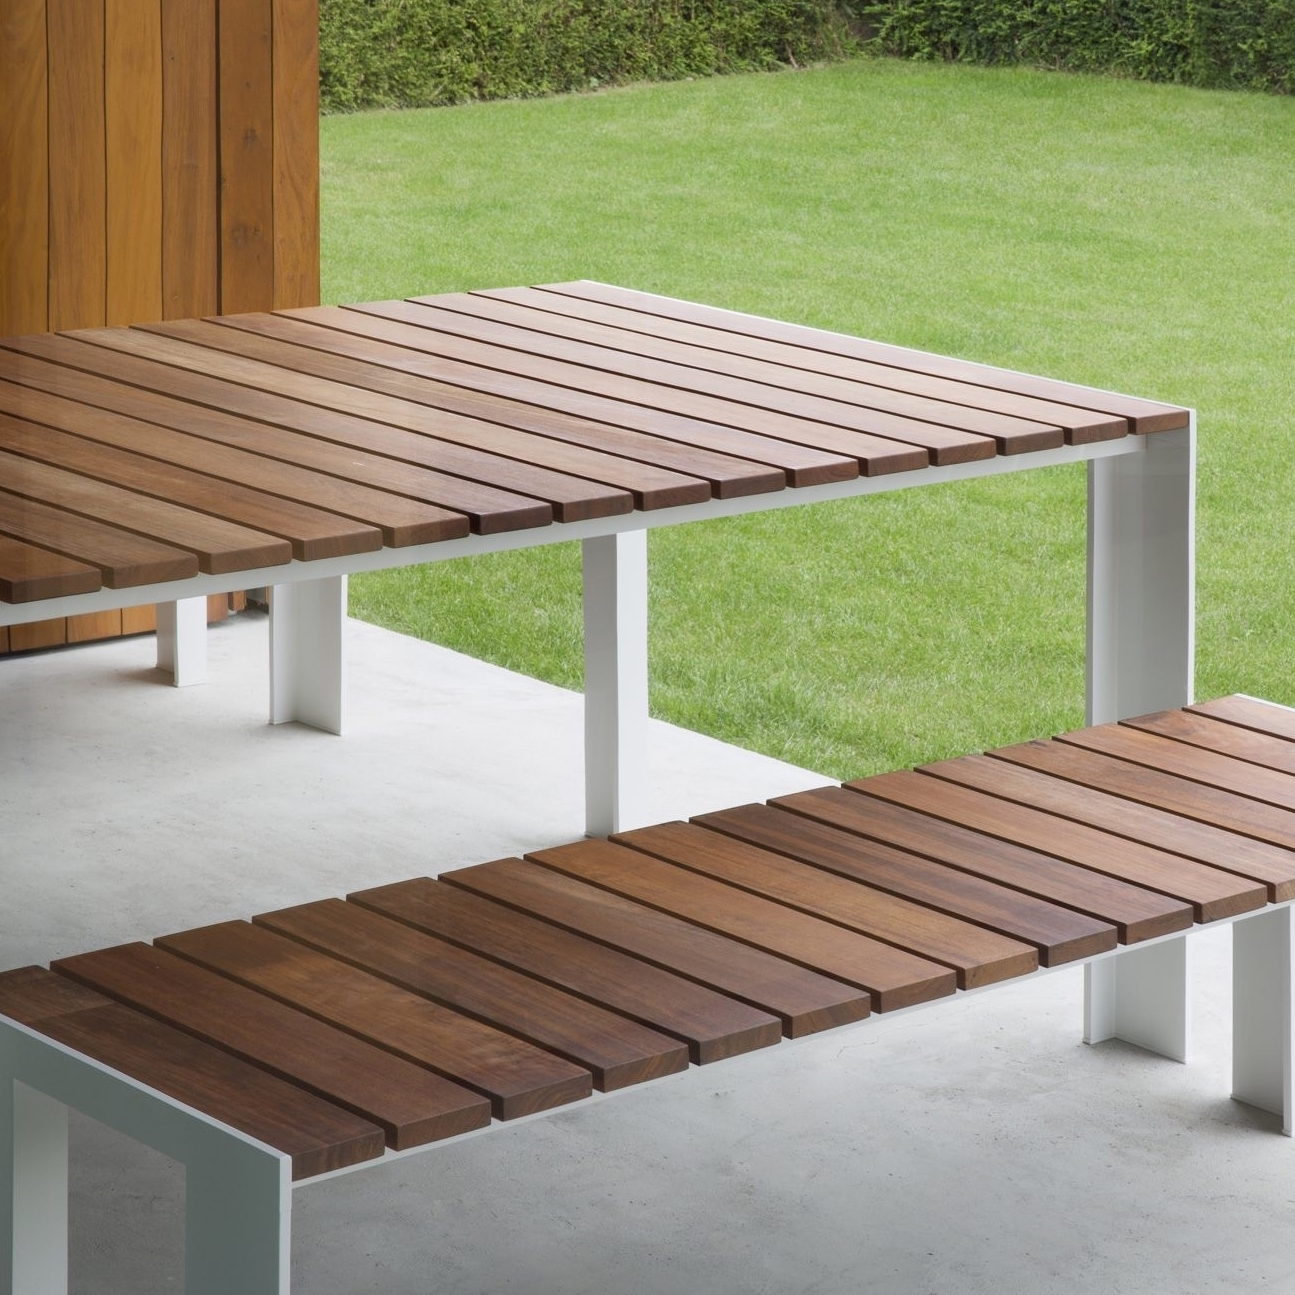 Funktion Alley Staycation – Our top tips to turn your outdoor space into an oasis